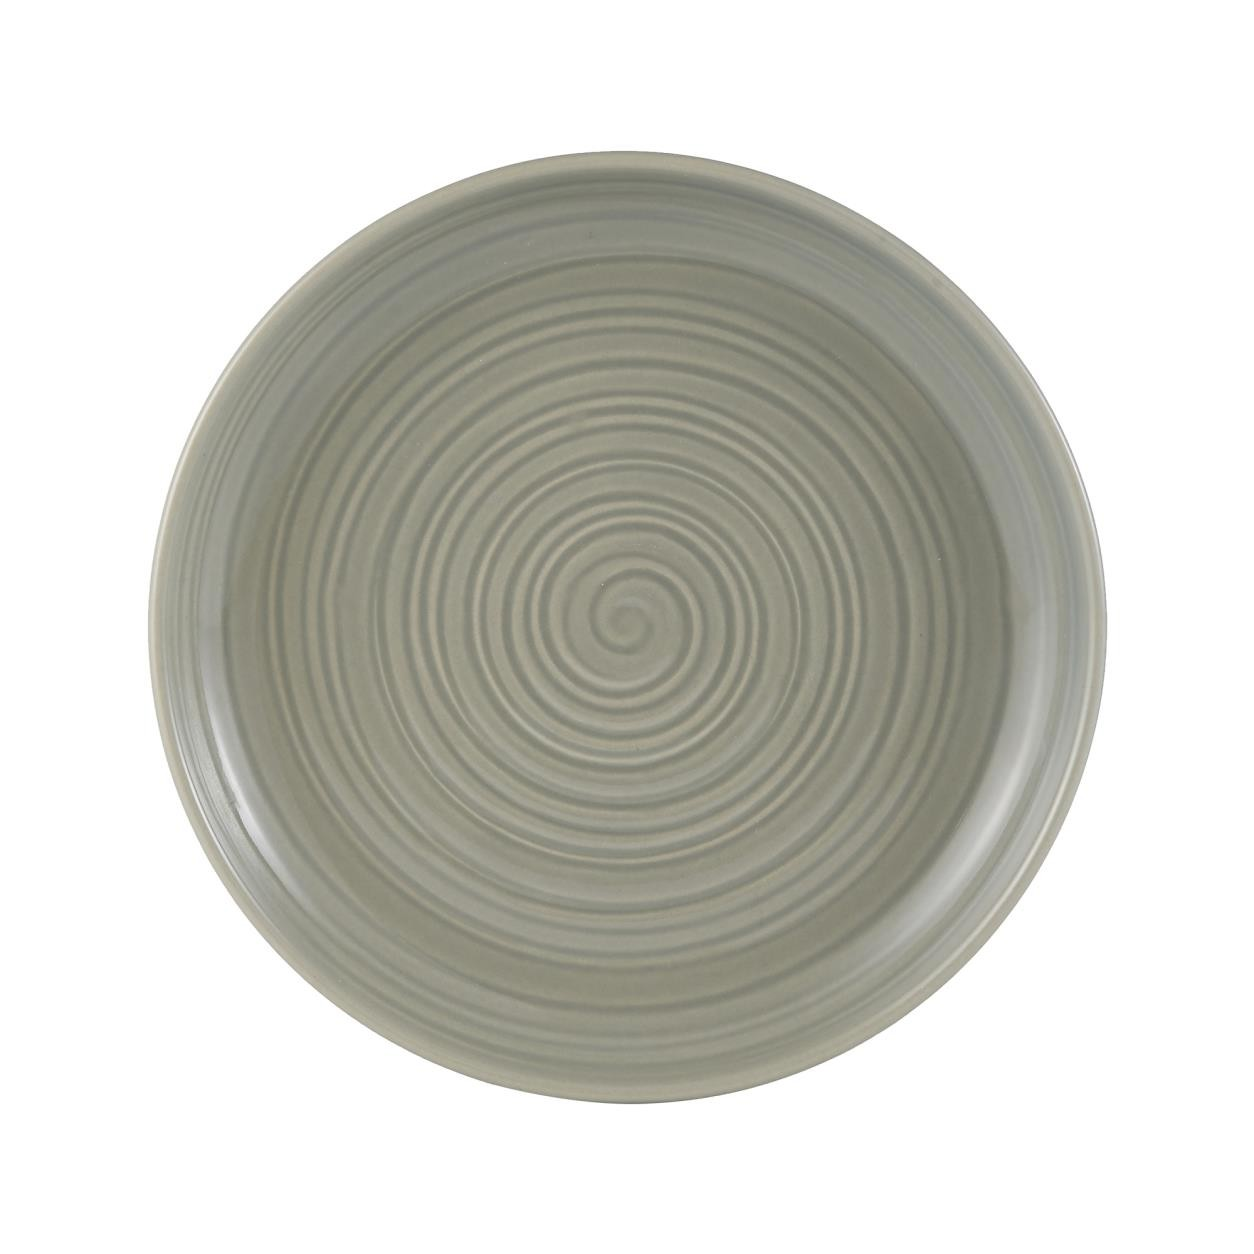 WILLIAM MASON SIDE PLATE GREY